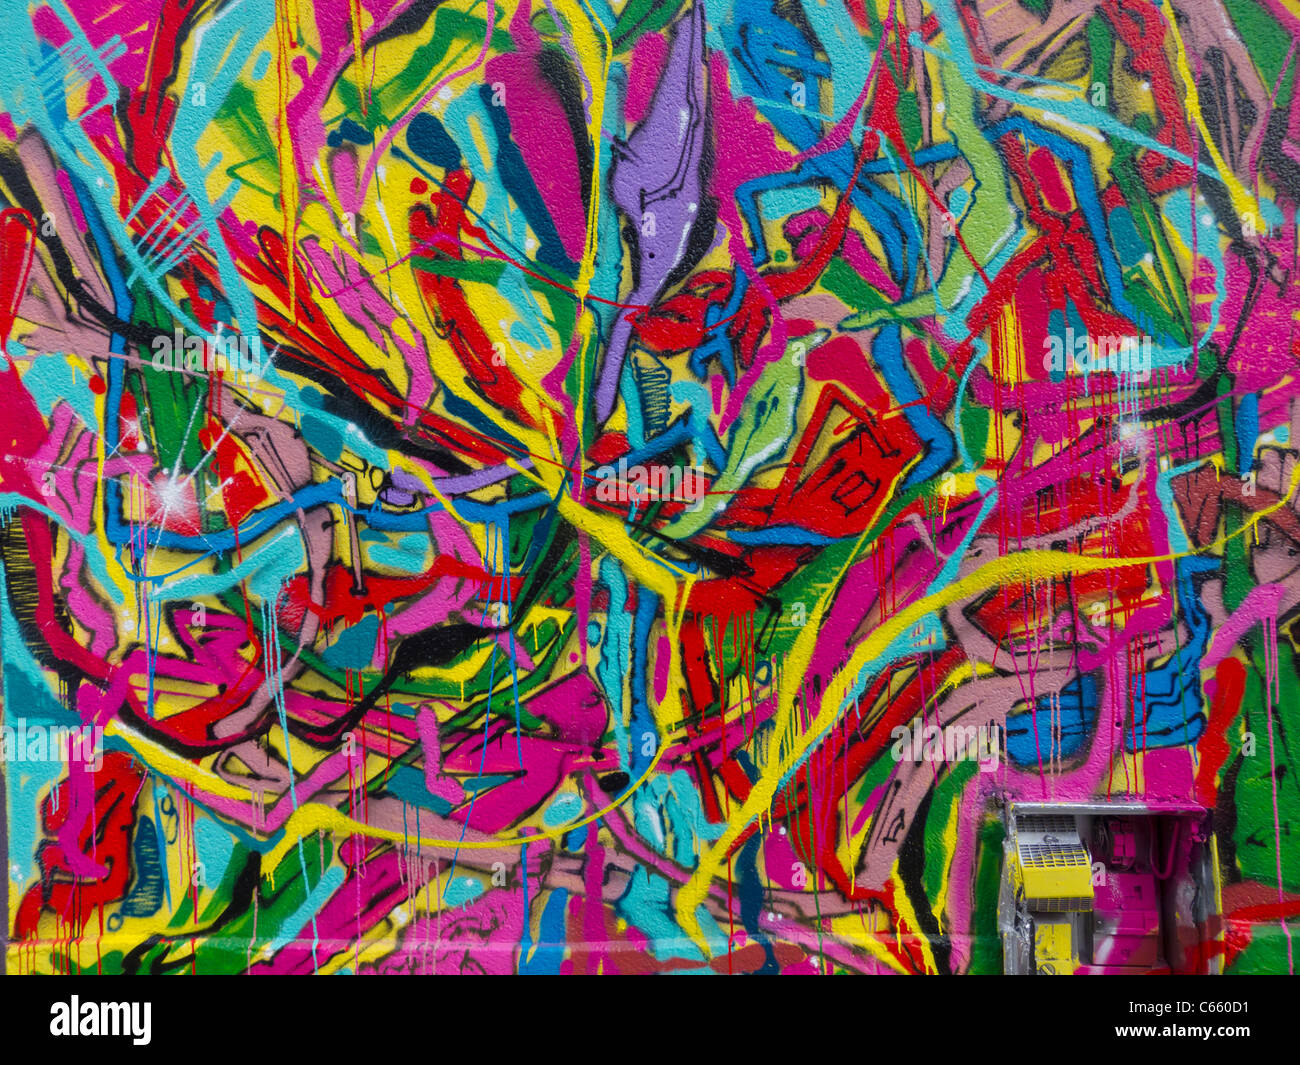 Abstract Mural Painting